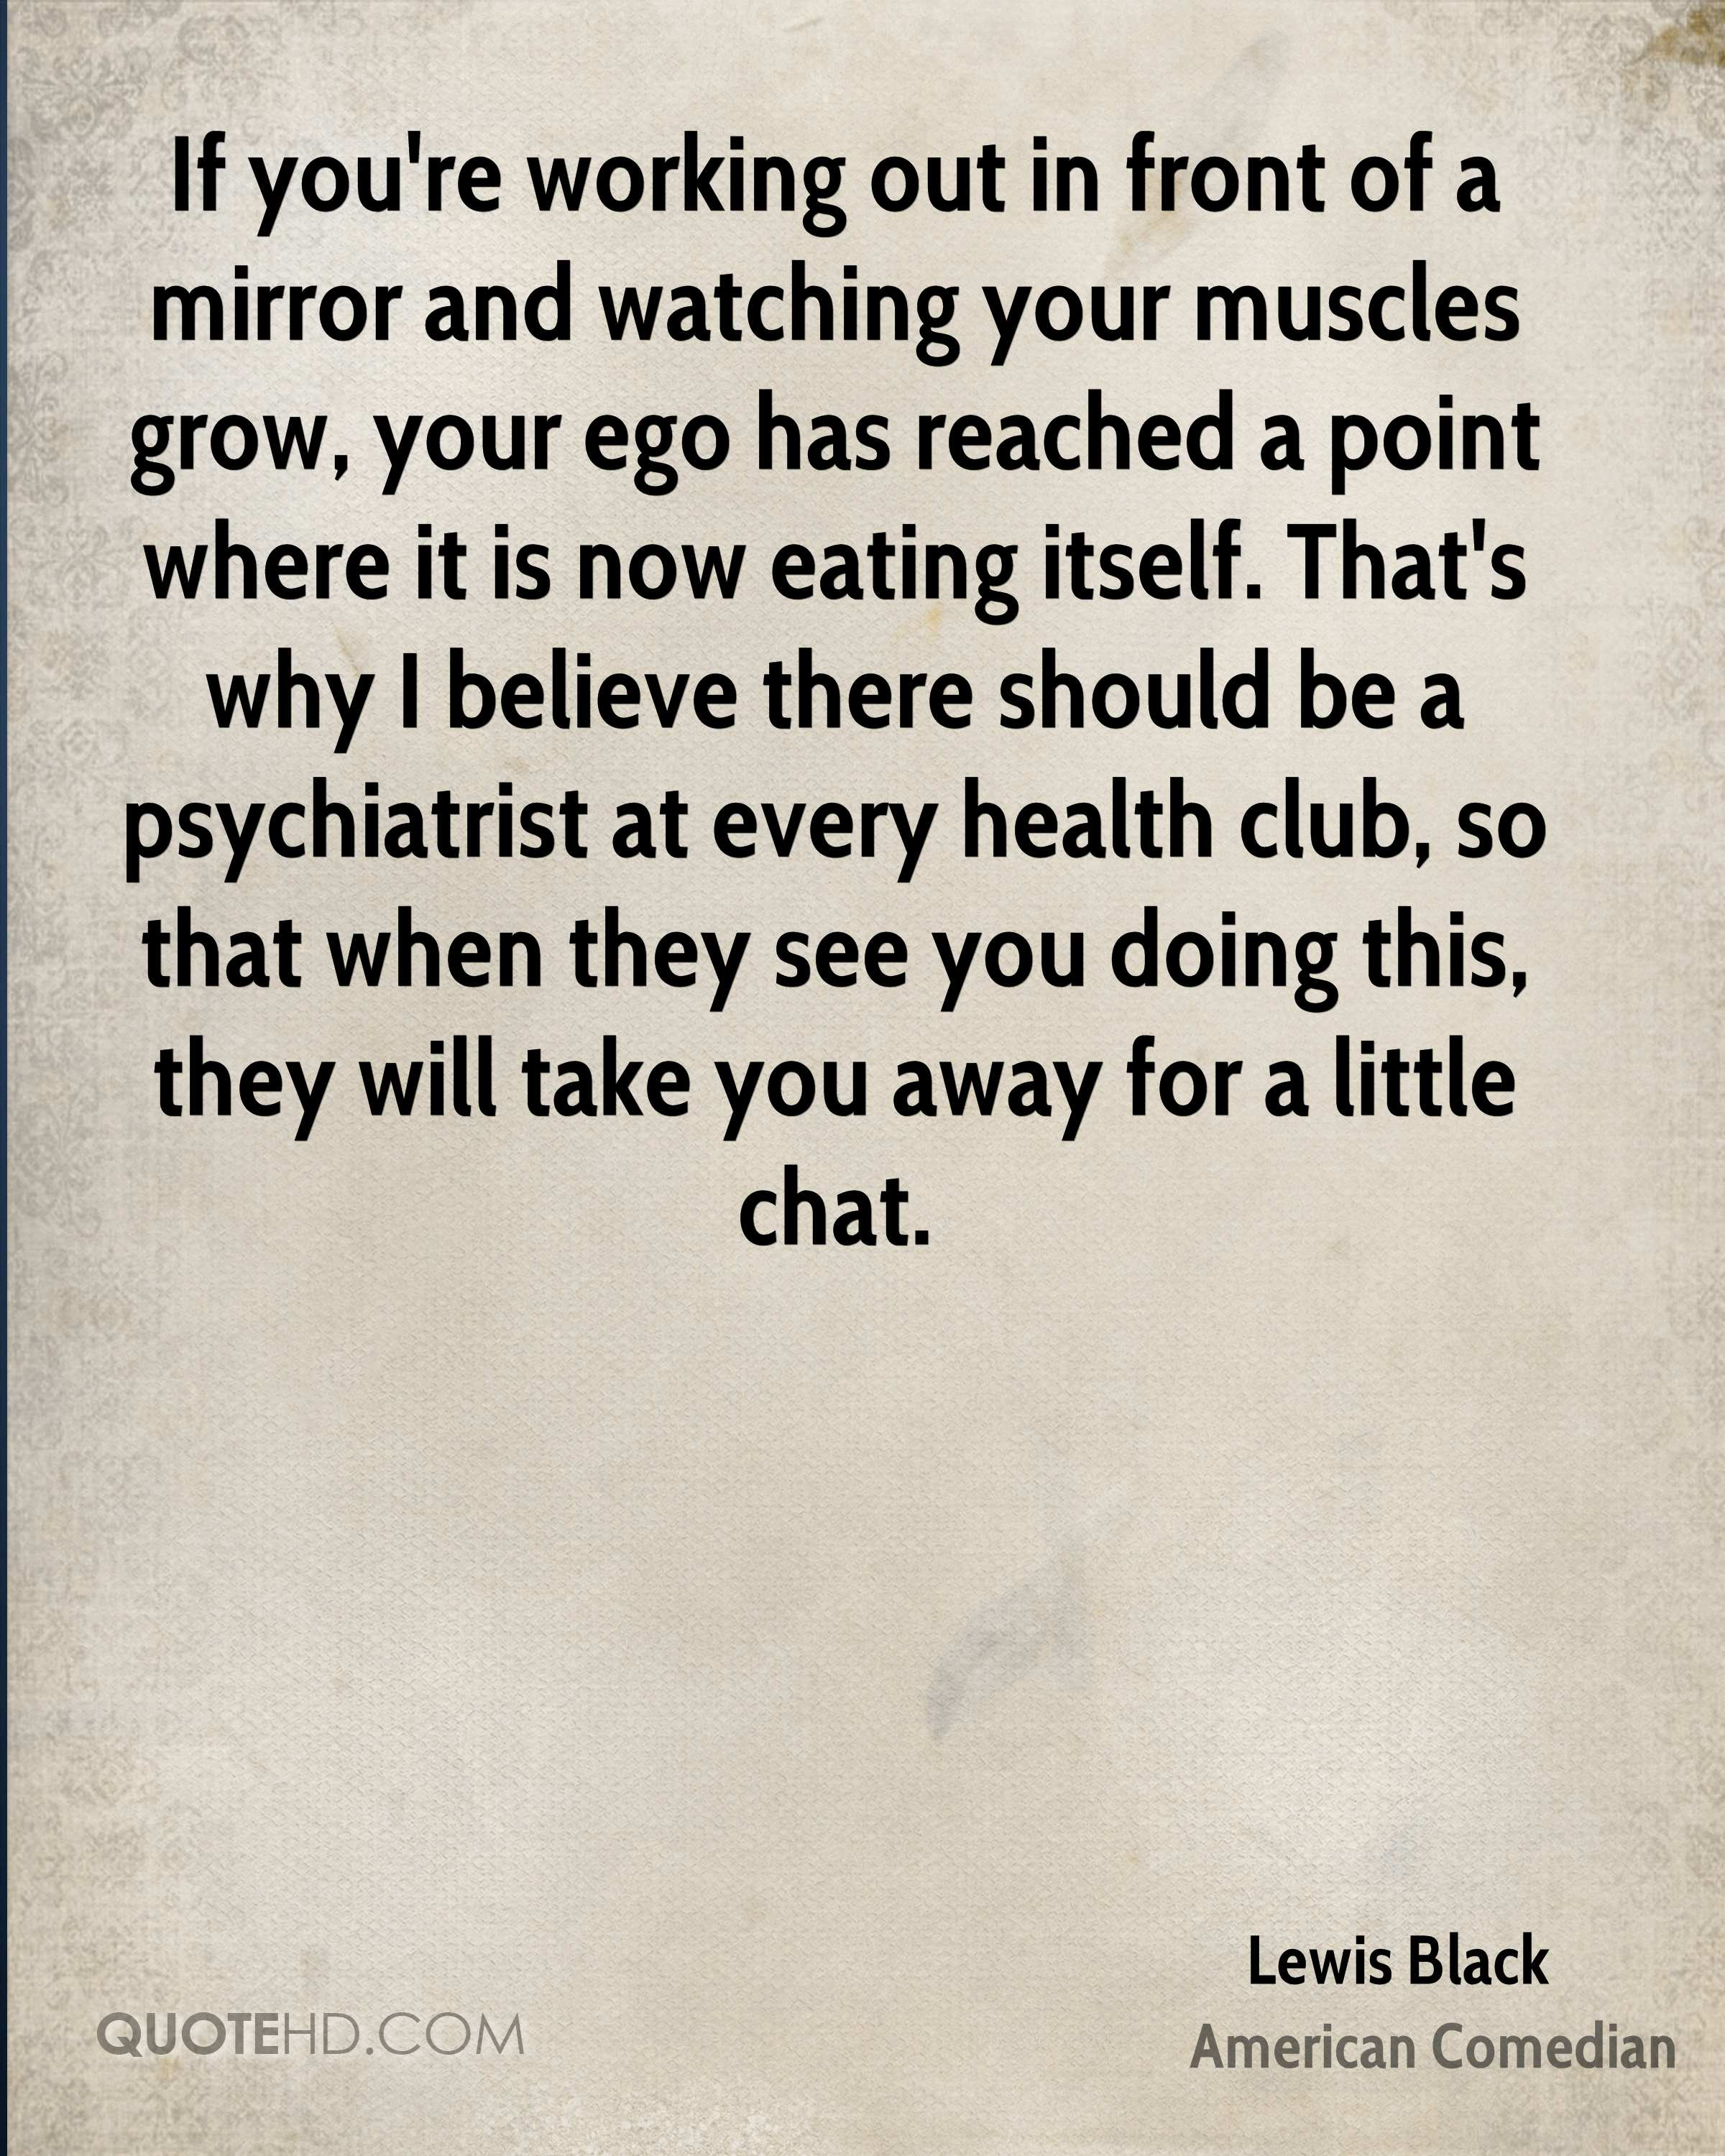 If you're working out in front of a mirror and watching your muscles grow, your ego has reached a point where it is now eating itself. That's why I believe there should be a psychiatrist at every health club, so that when they see you doing this, they will take you away for a little chat.